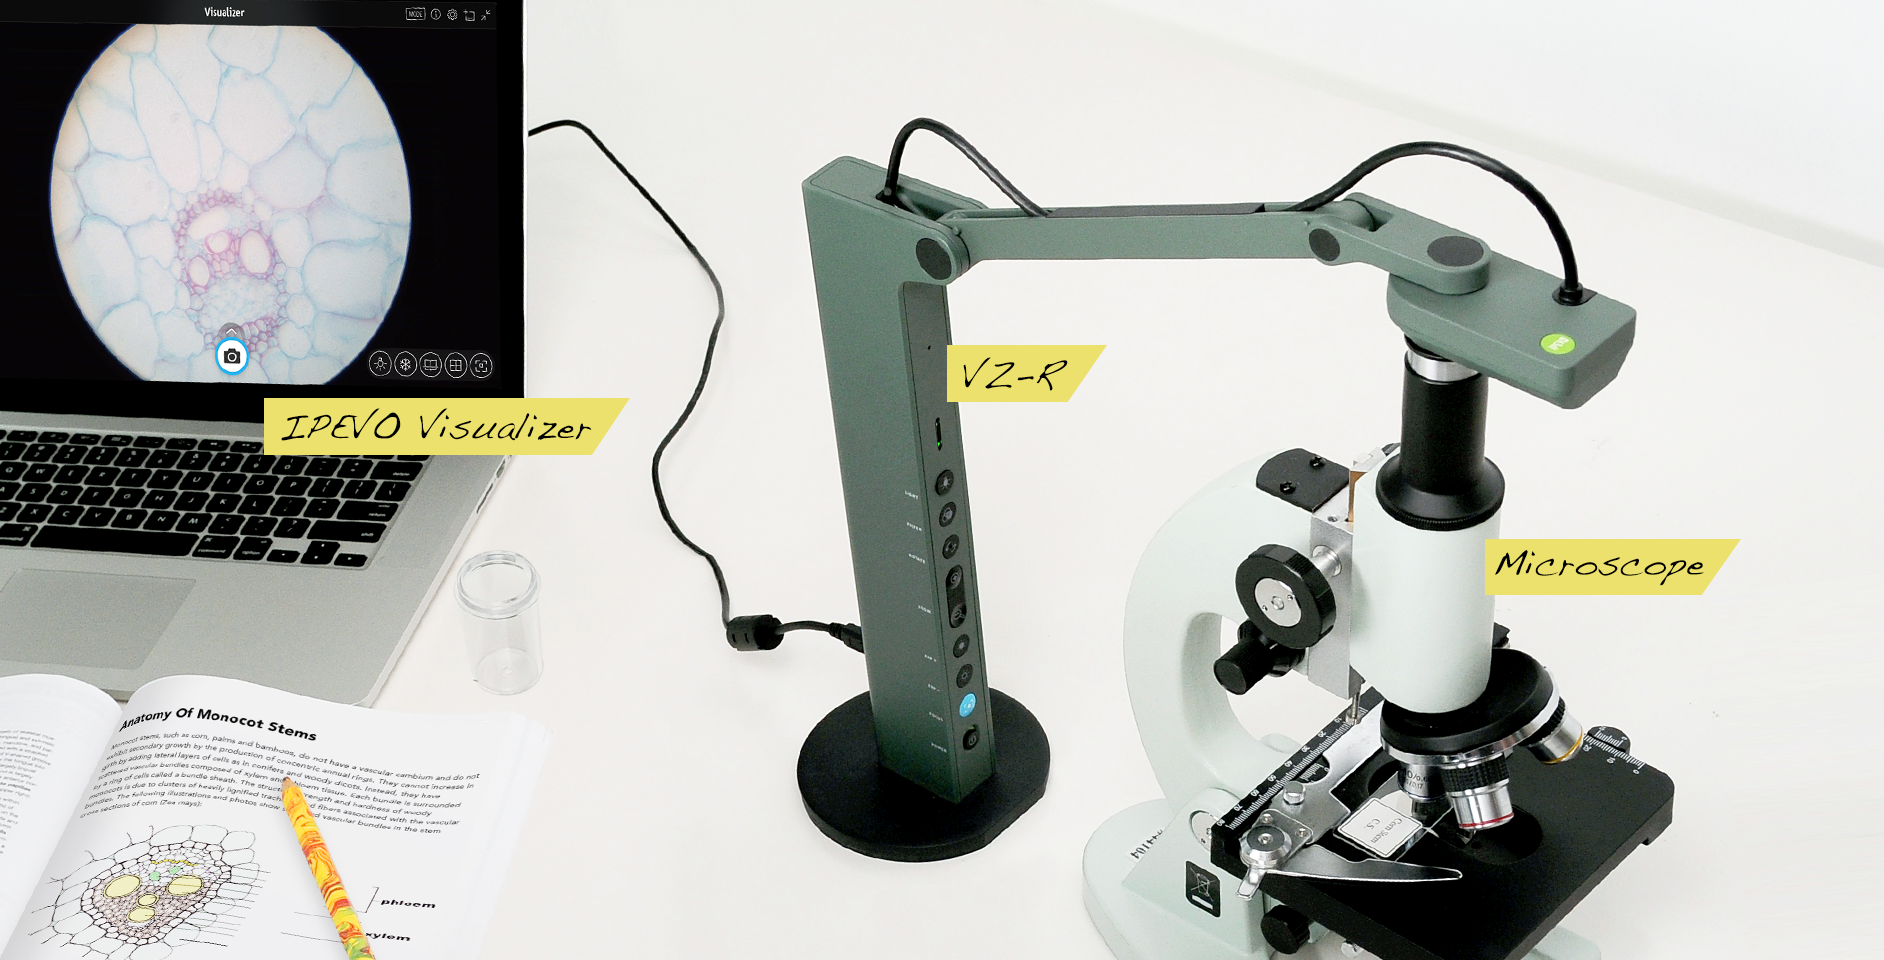 Get A Closer Look By Using Ipevos Document Cameras With A Microscope